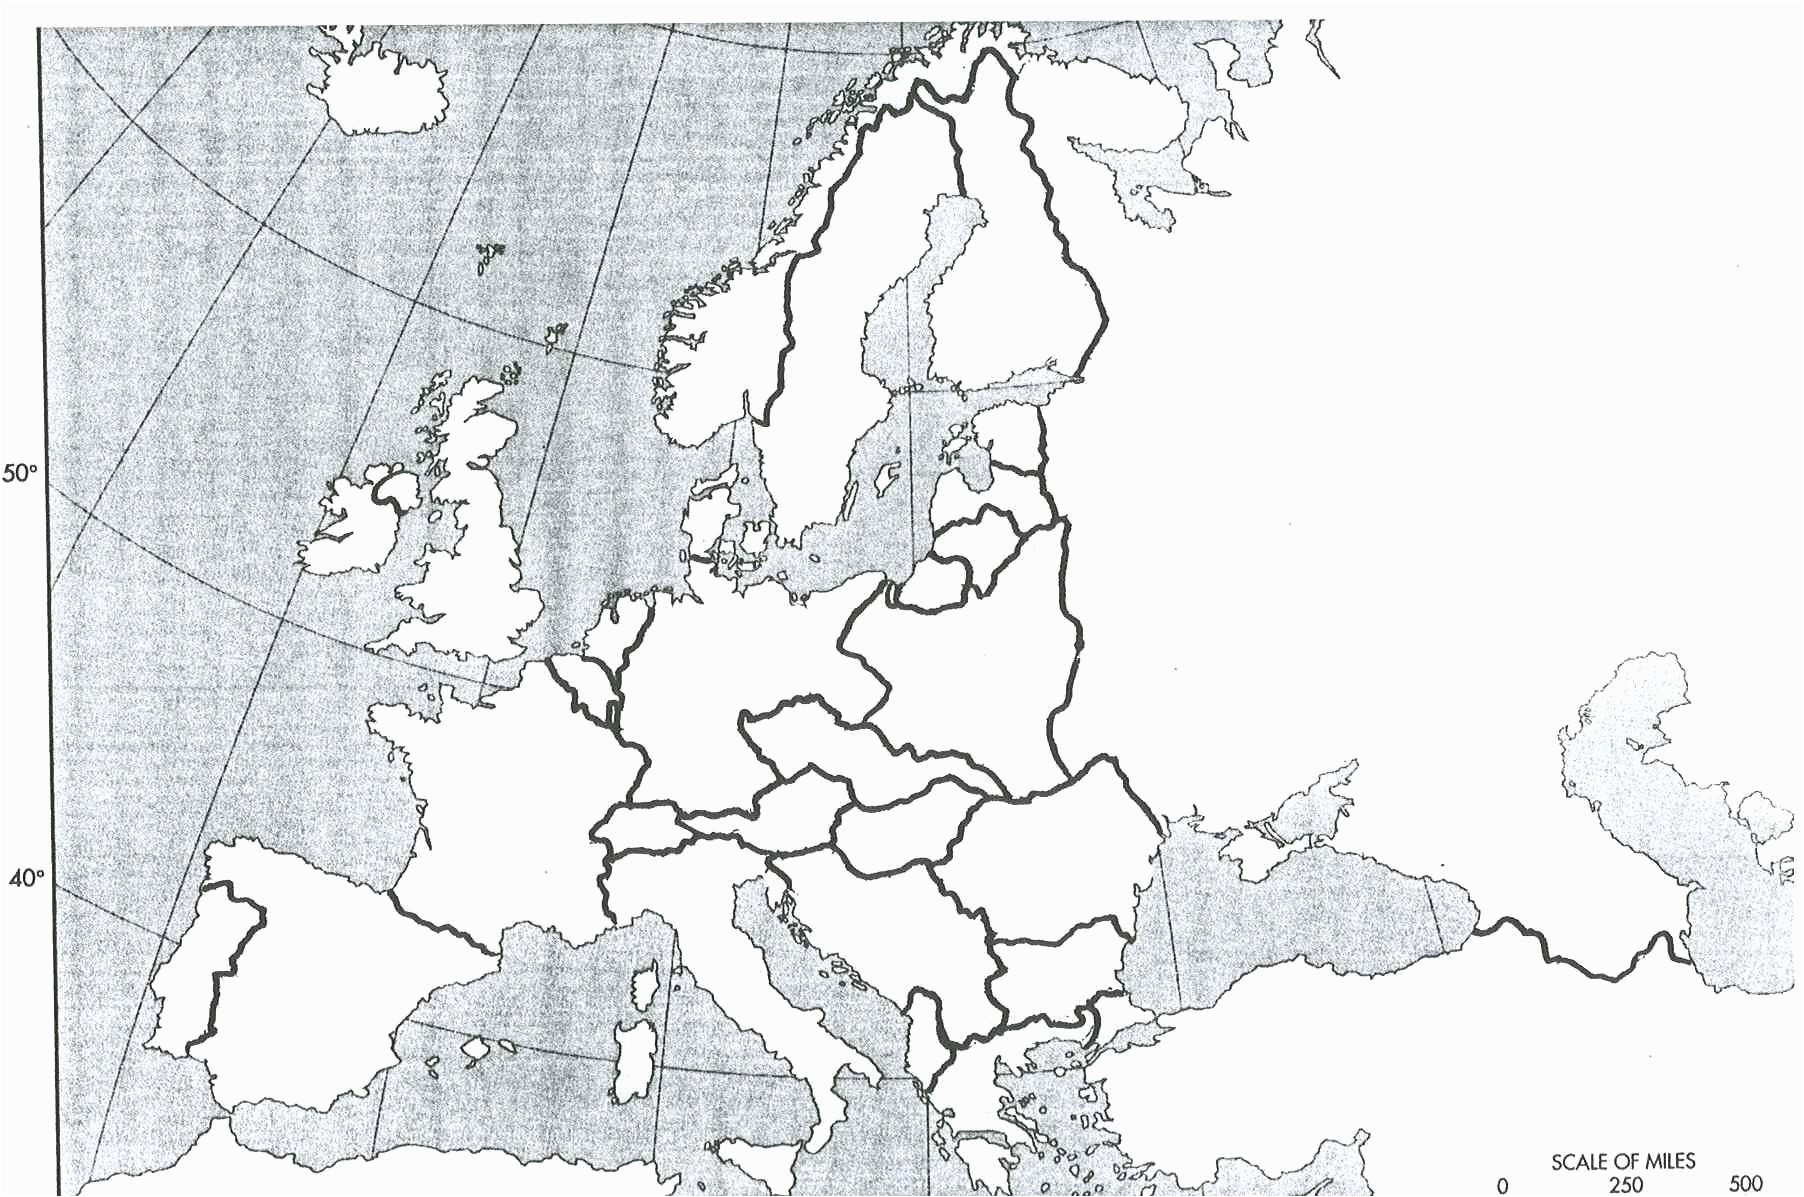 A Printable Map Of Europe Inspirational Maps The World Black And White Free Downloads Europe In World War